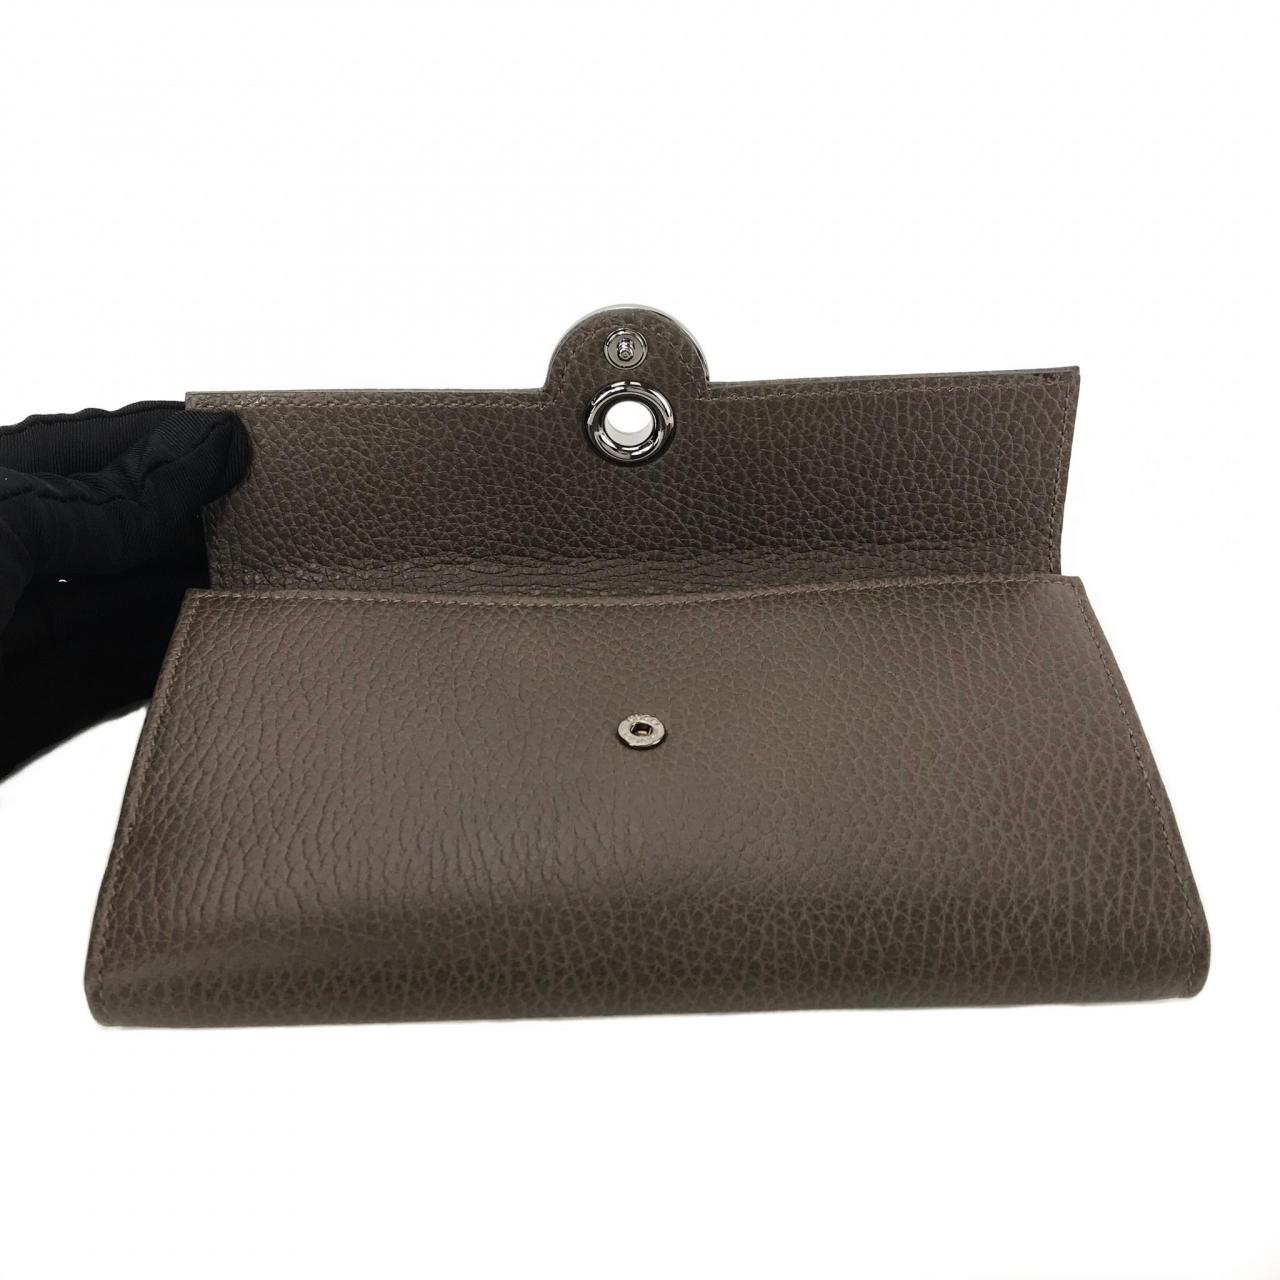 cbcc3d682 Replica Bags Clearance You are sending too many requests in parallel ...